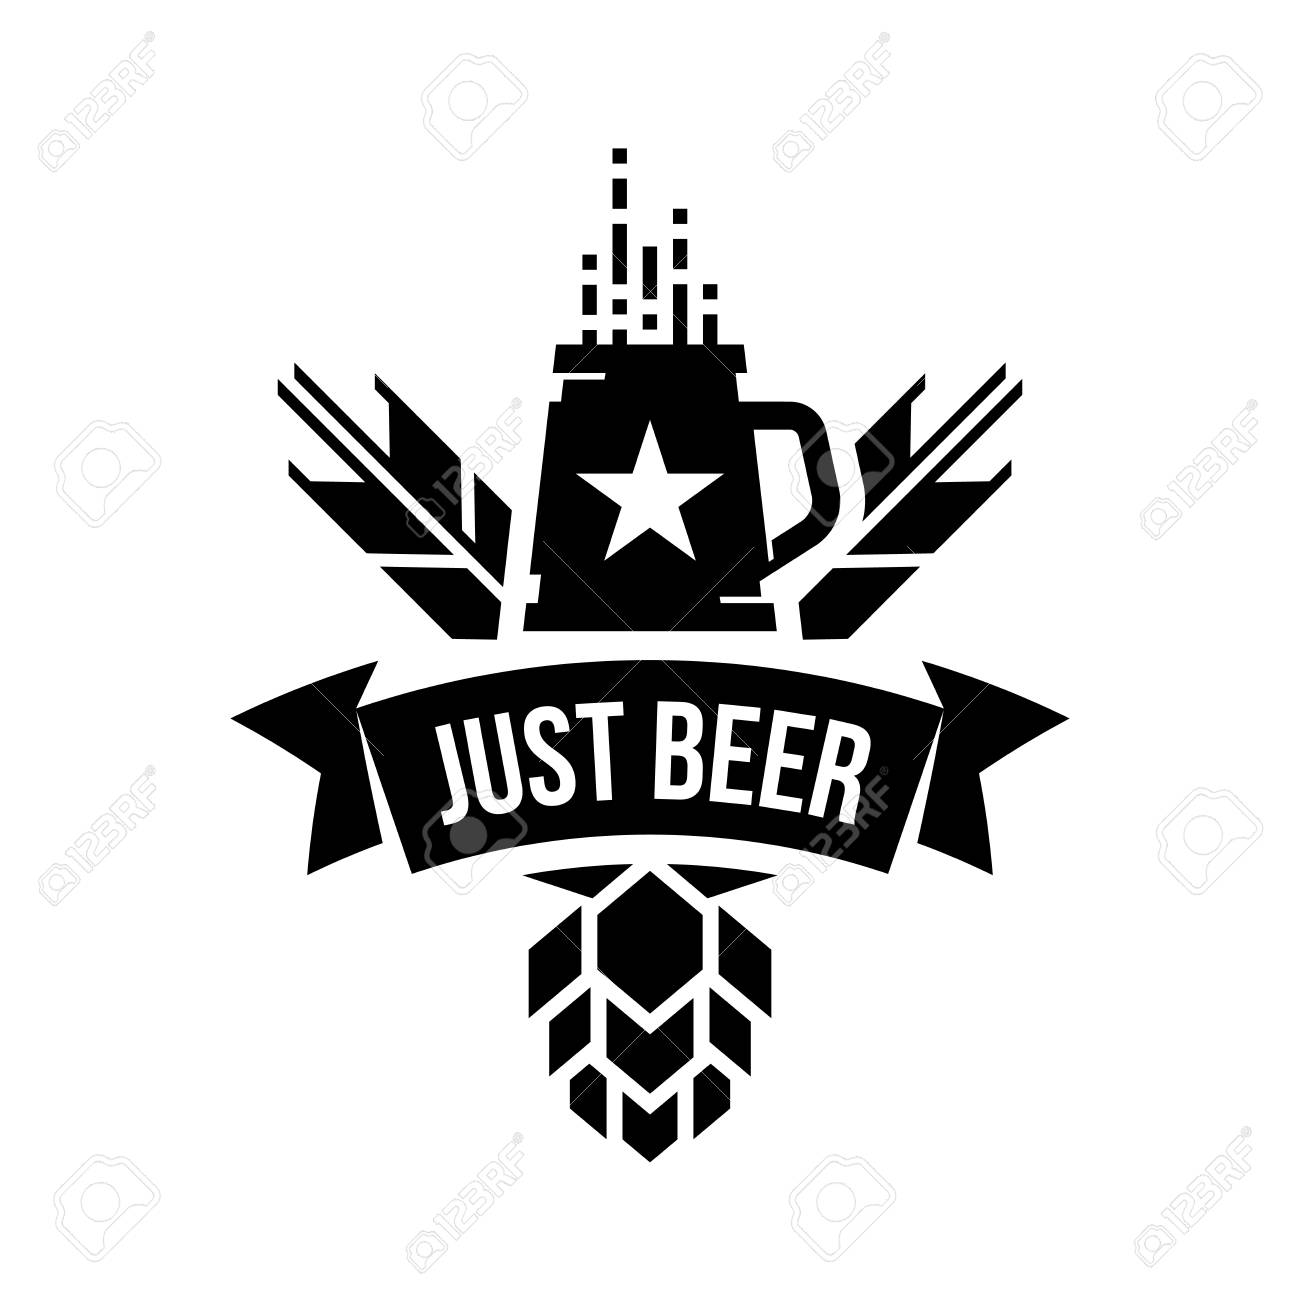 Modern round craft beer drink vector logo sign for bar, pub, store, brewhouse or brewery isolated on white background. Premium quality mug logotype illustration. Brewing fest t-shirt badge design. - 120438736